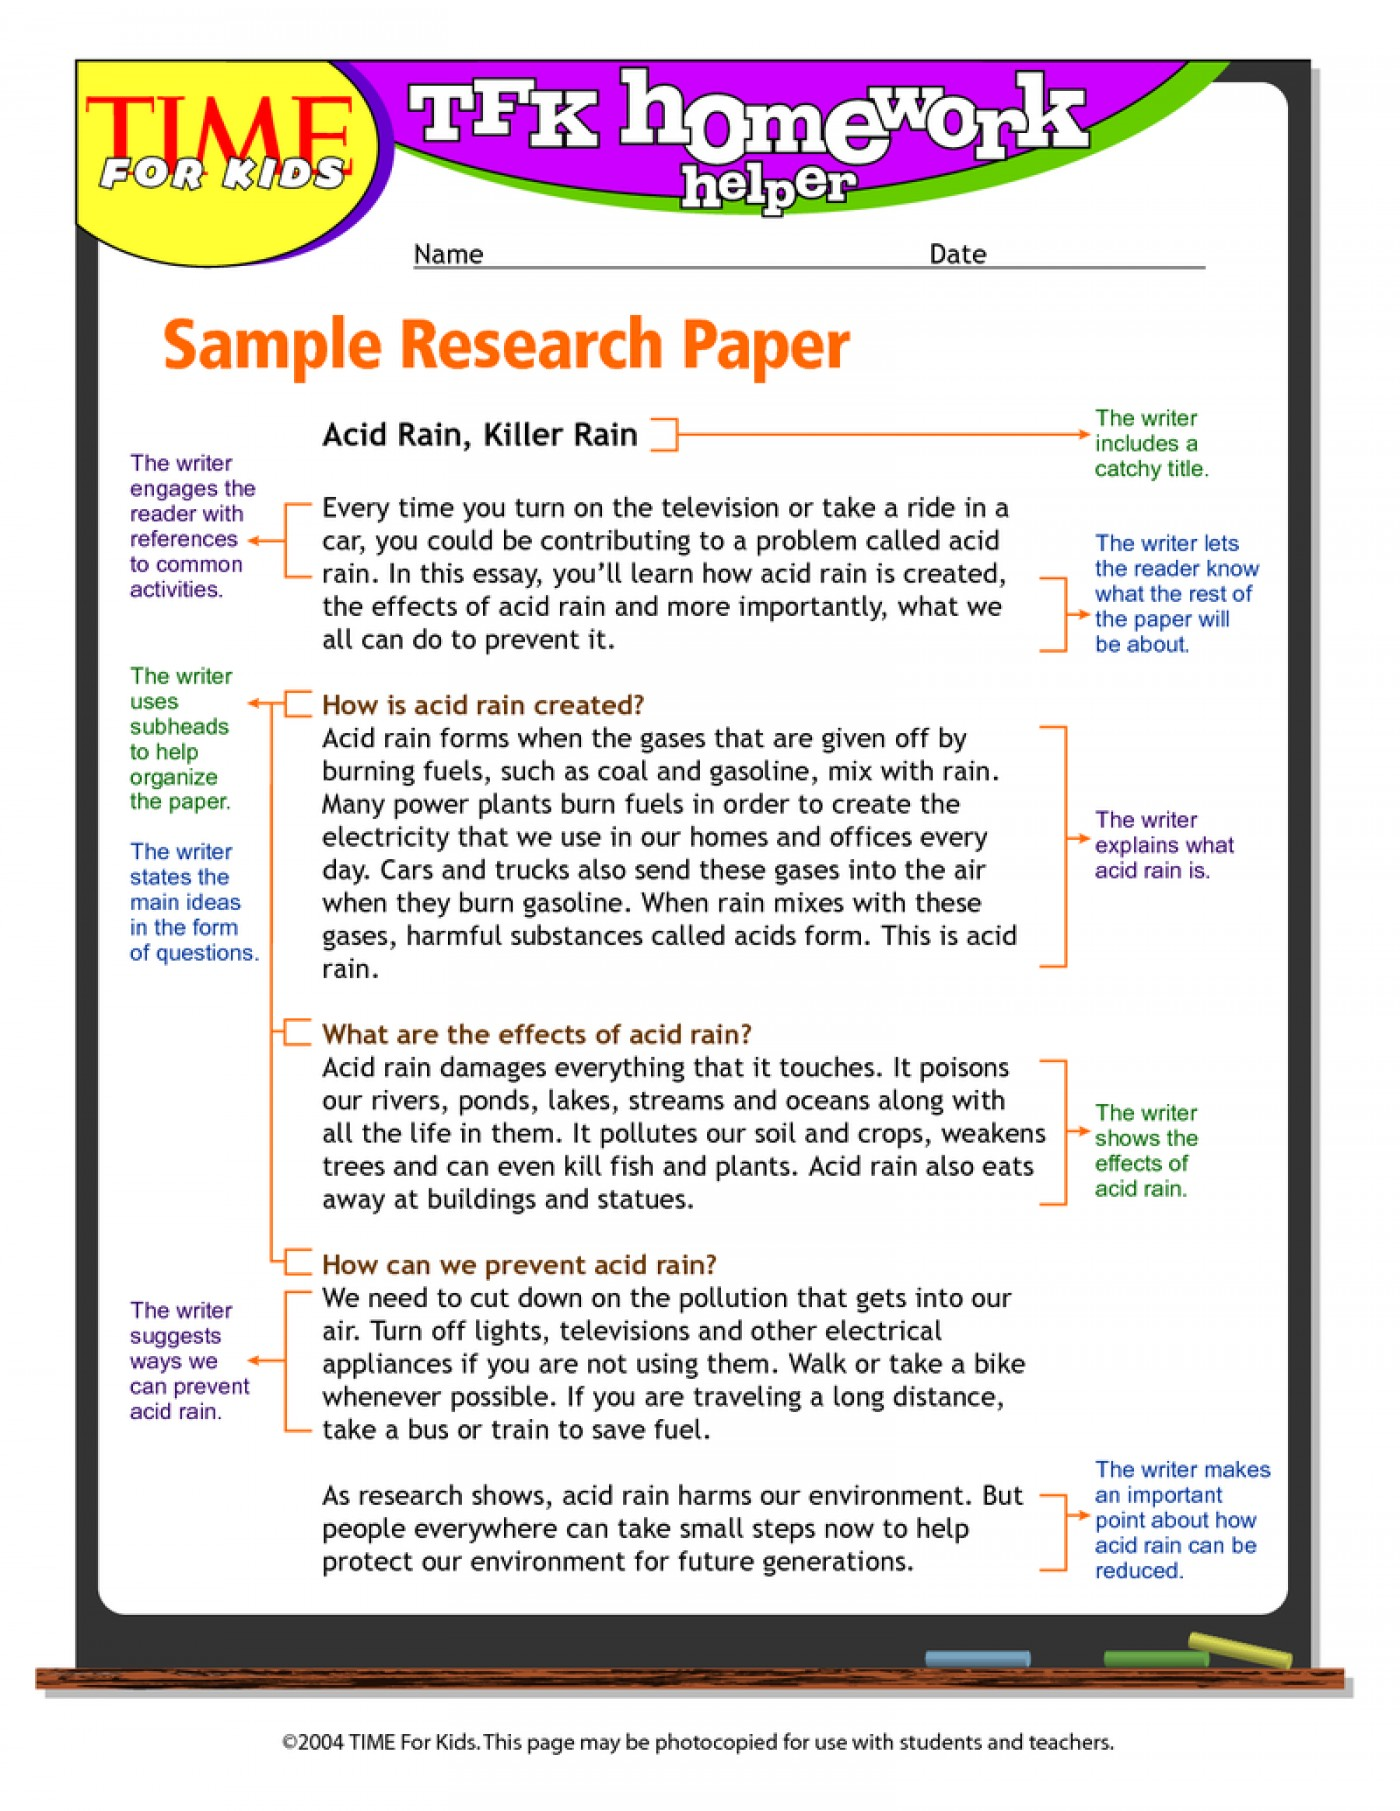 009 How To Do Research Top A Paper Project Book Write Proposal In Apa Format 1400